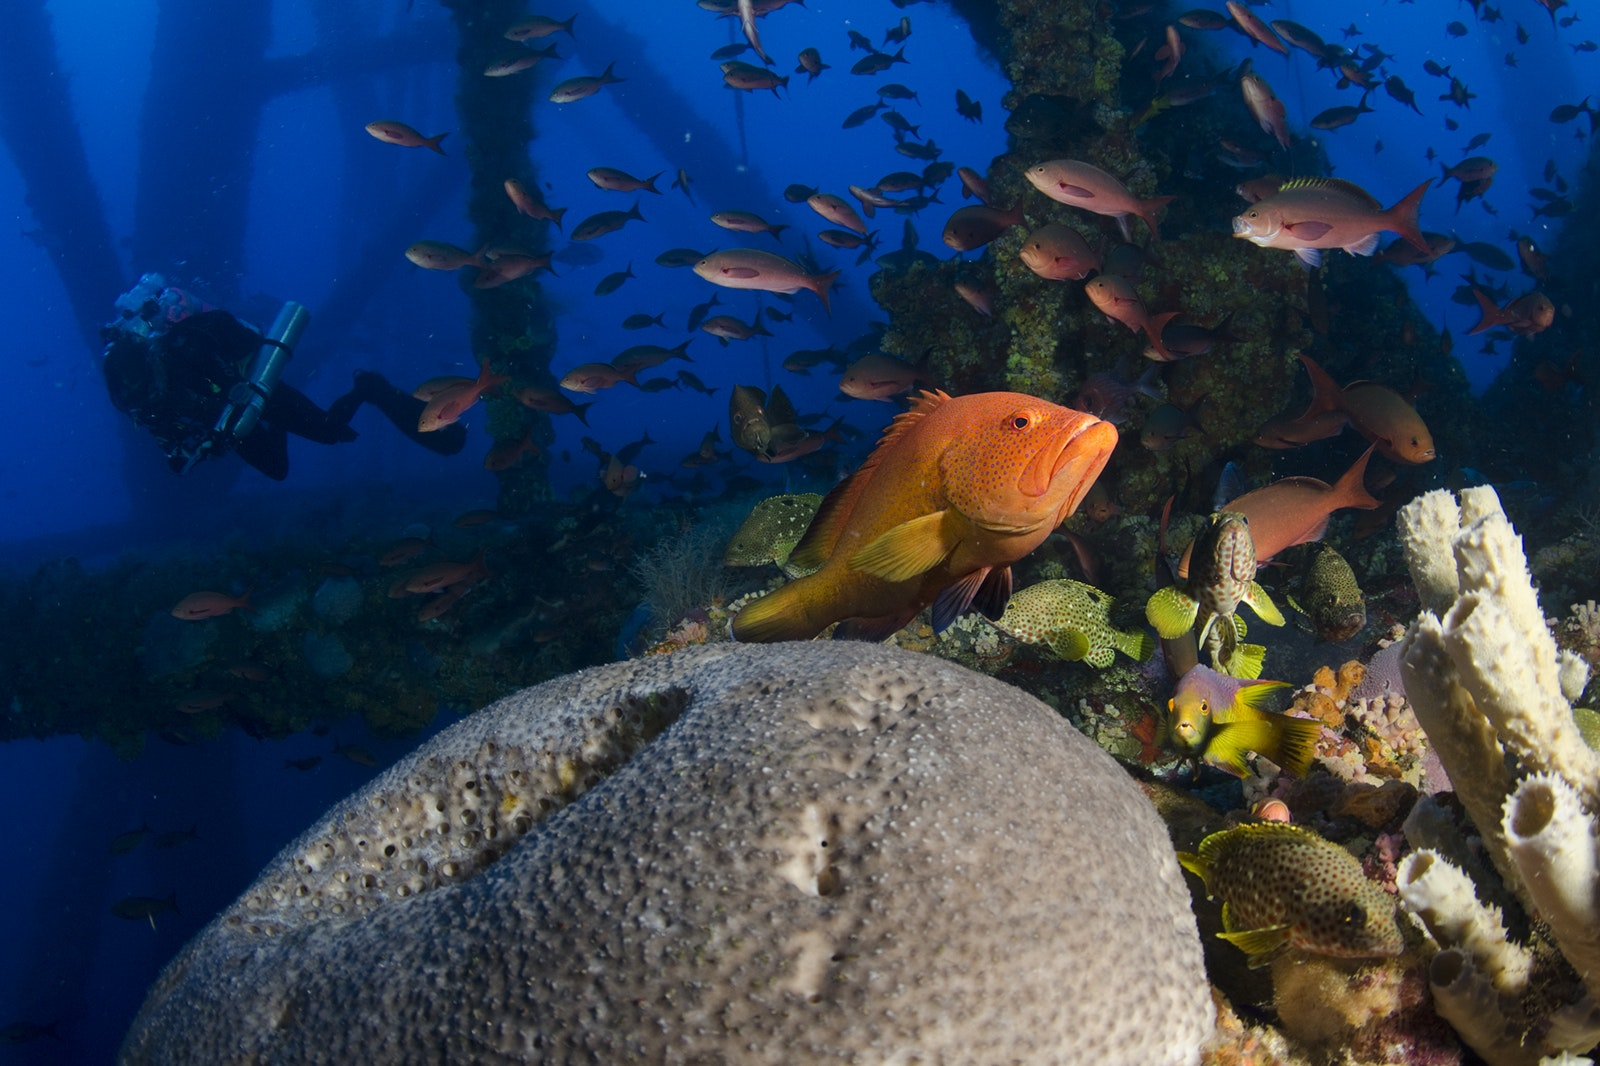 Platform HI-A-389 is part of the Flower Garden Banks National Marine Sanctuary, which is considered one of the healthiest reefs in the Caribbean and the Gulf of Mexico.